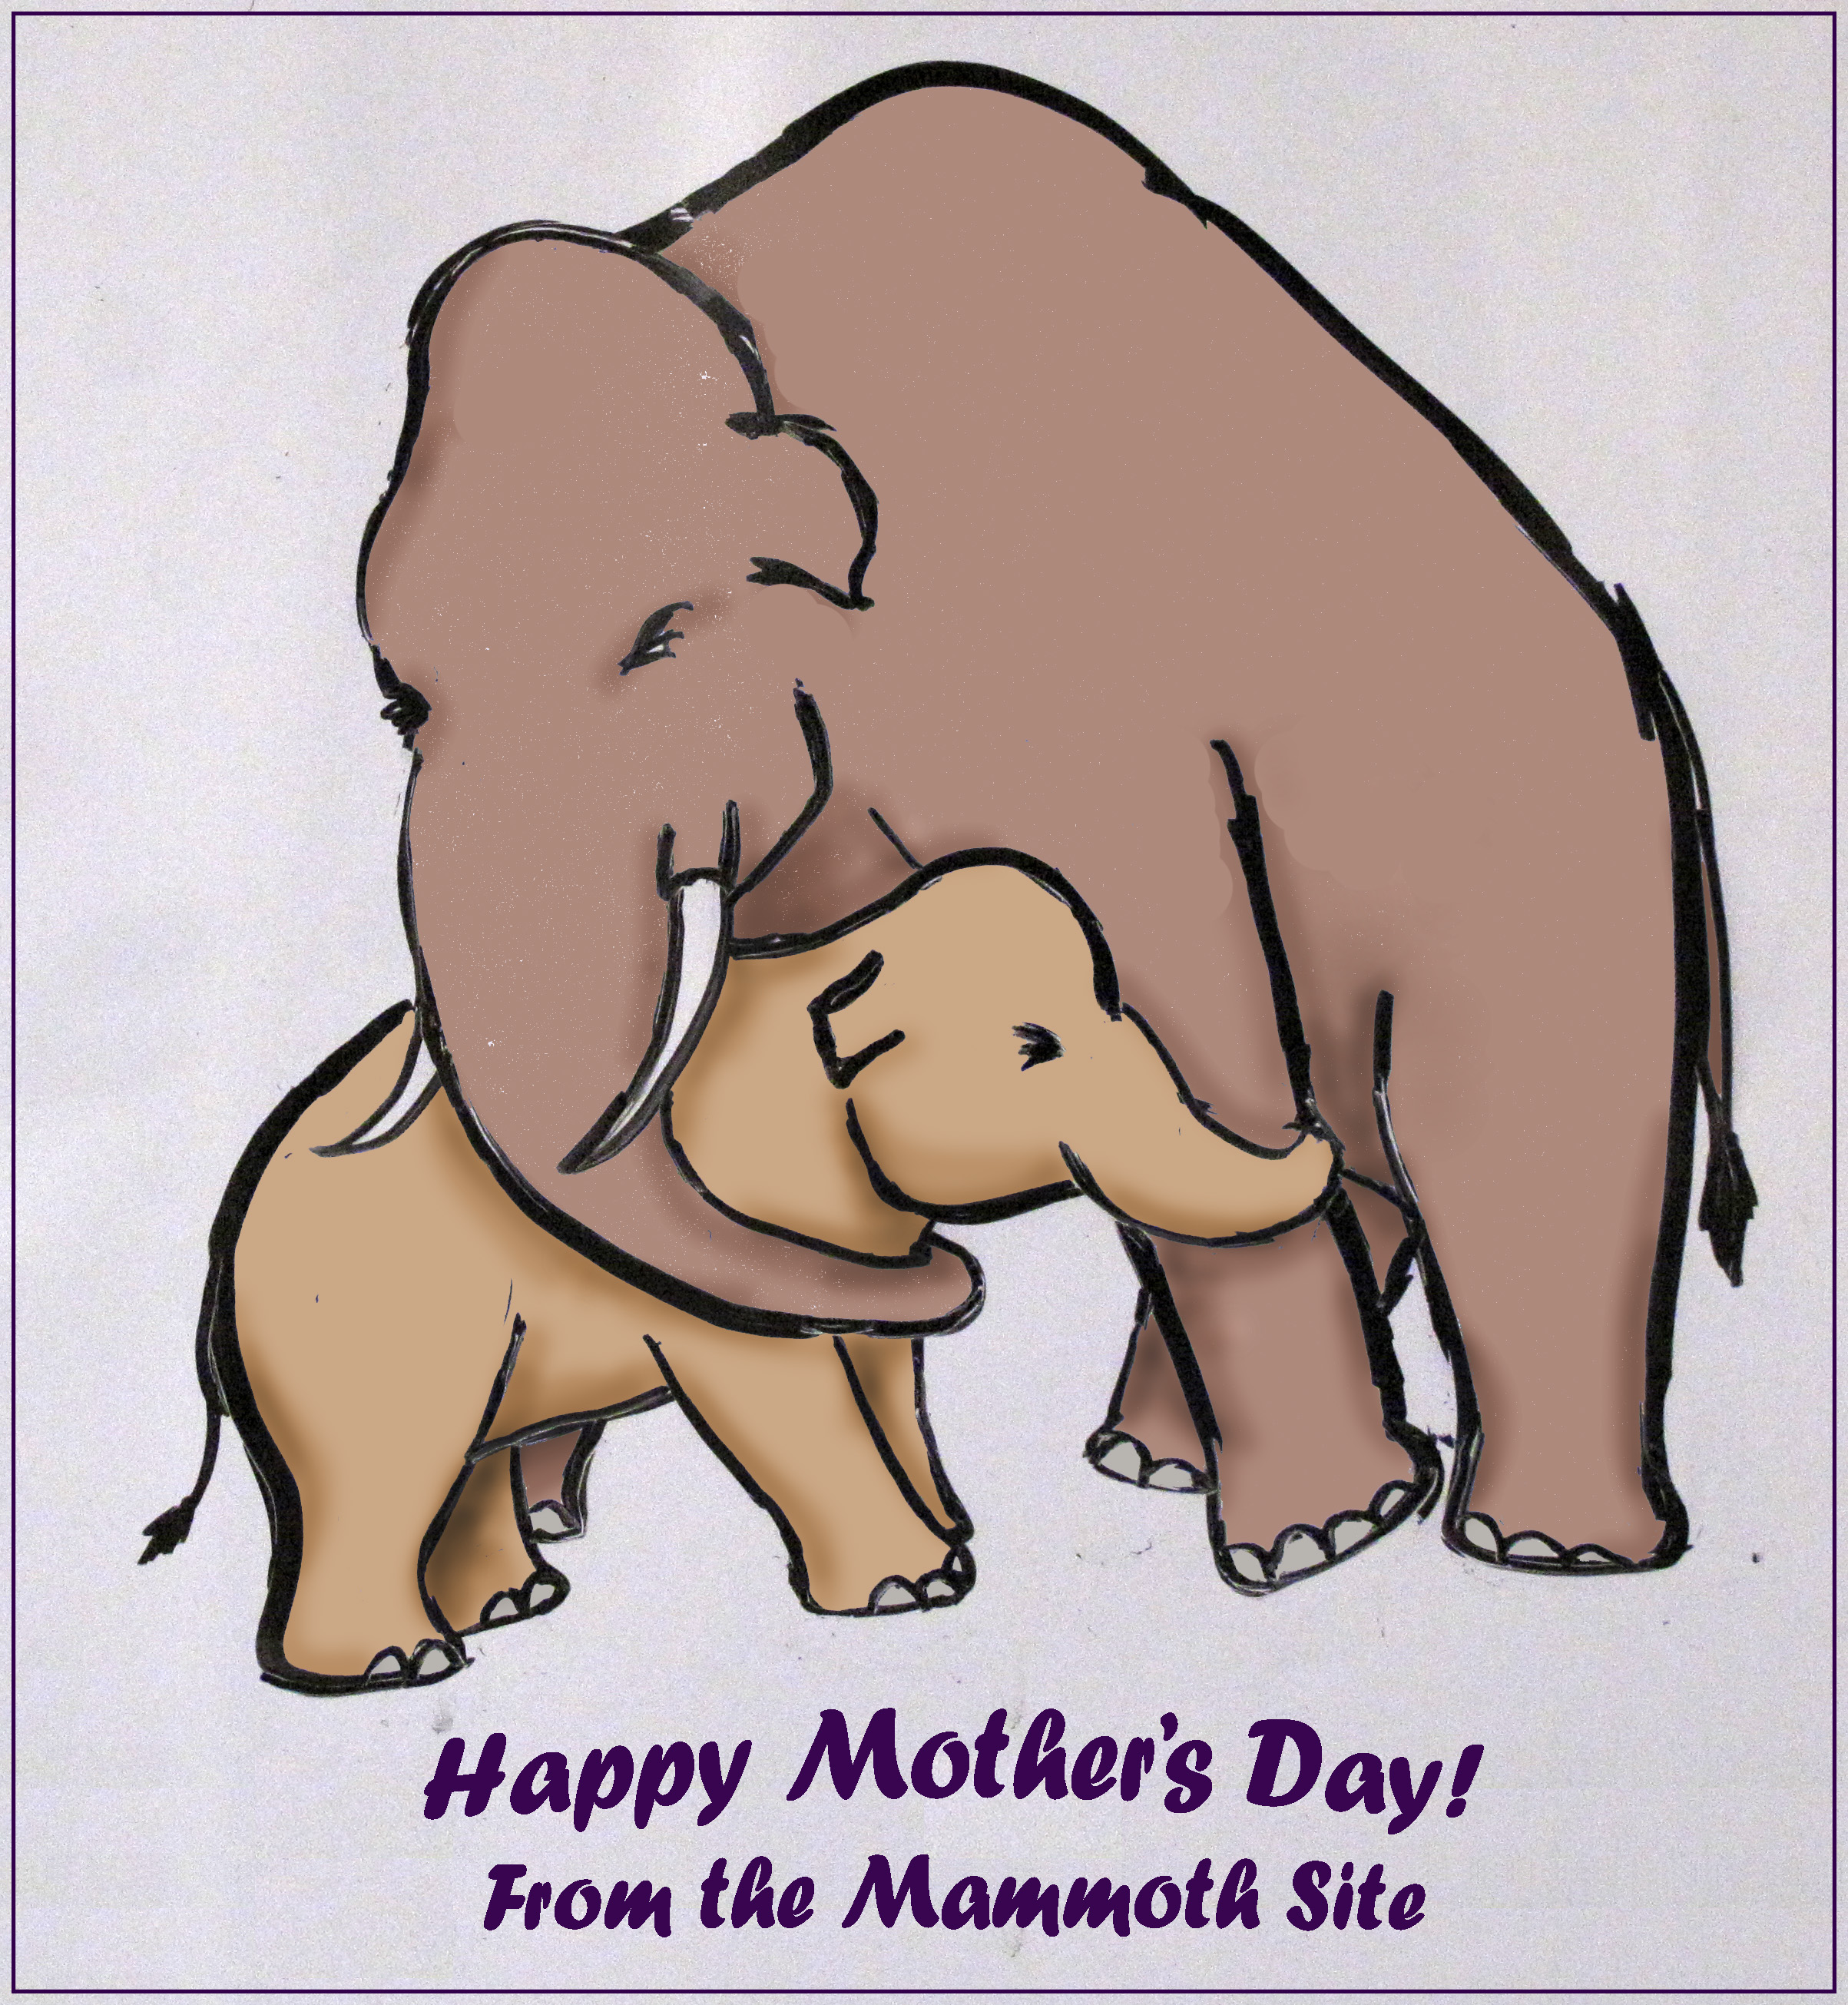 Mother's Day Care and Share at The Mammoth Site